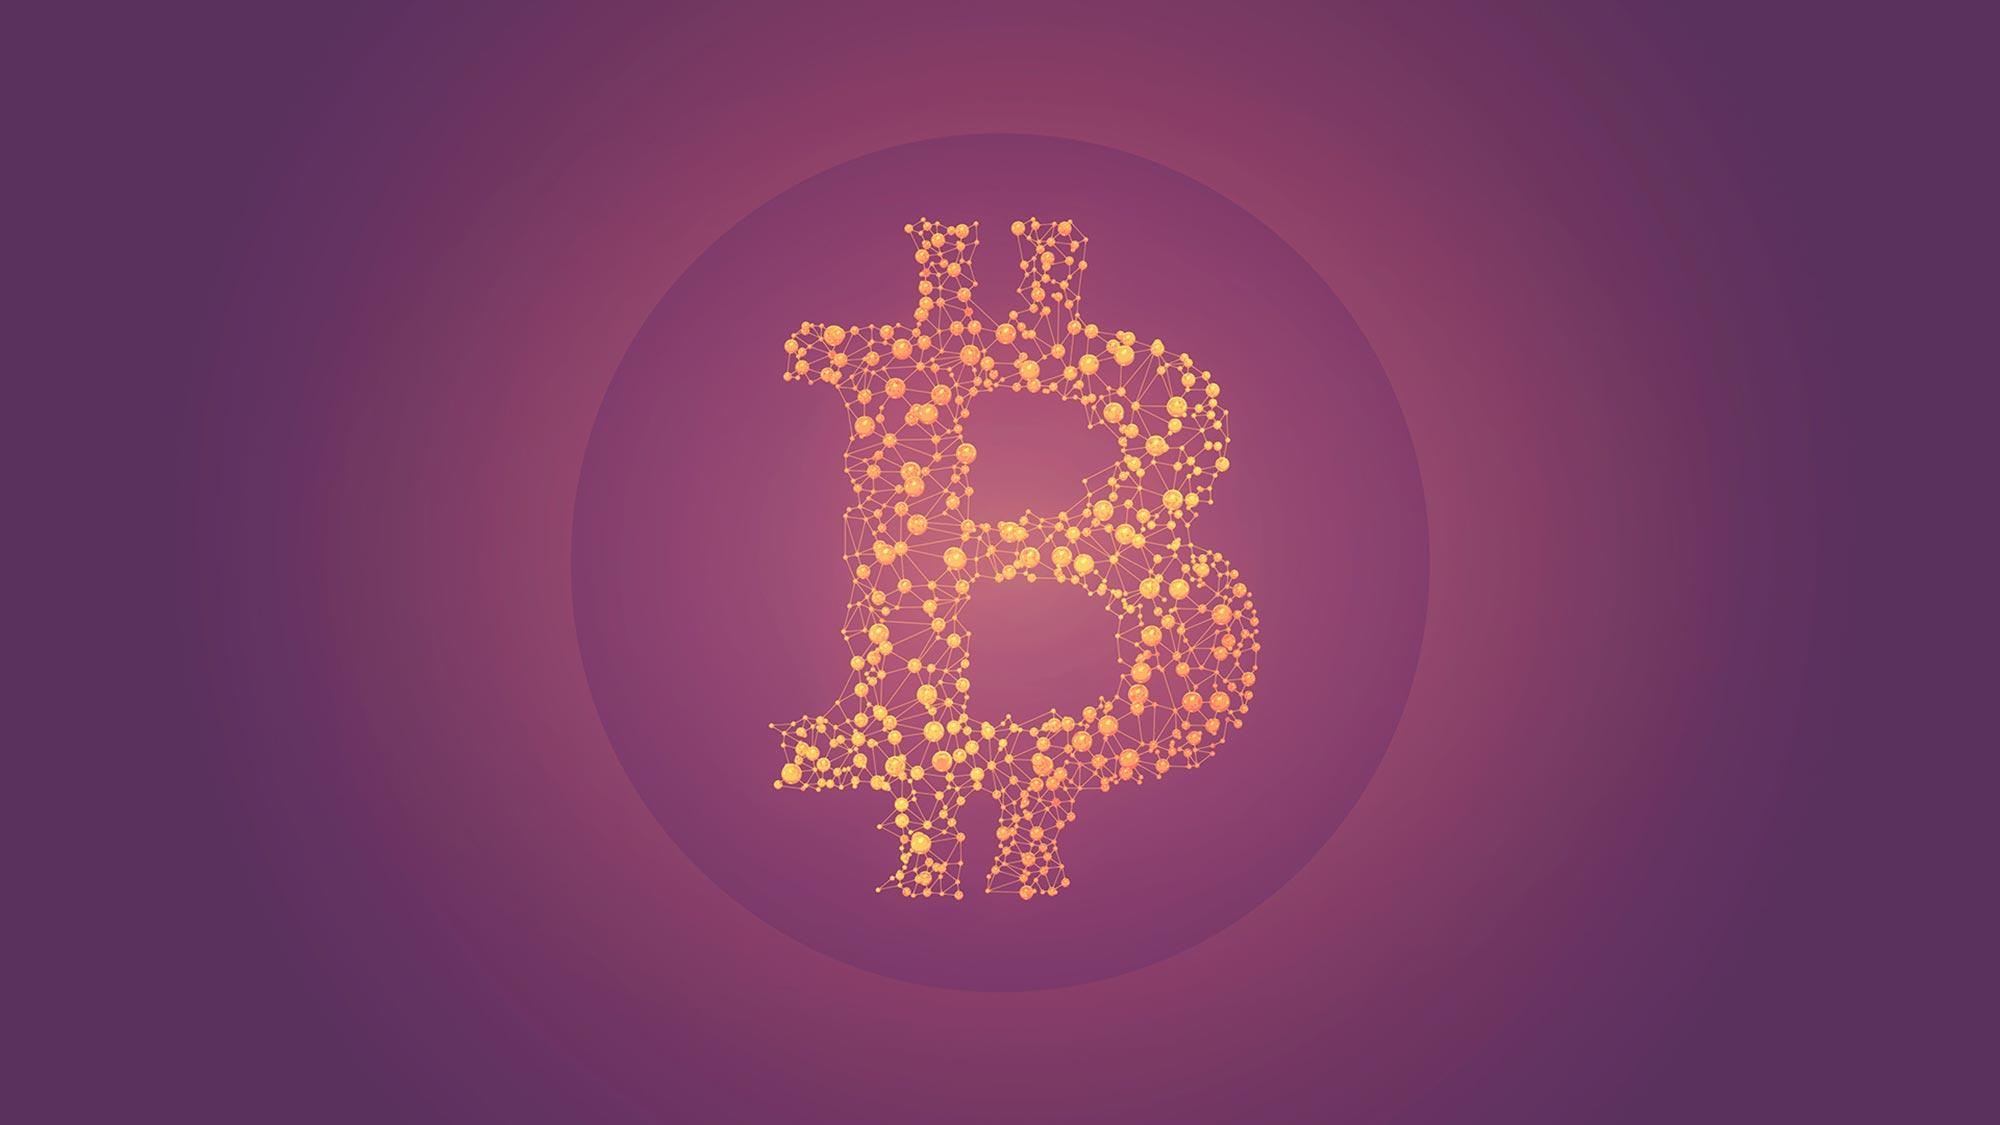 Bitcoin_Network_Purple_1920x1080